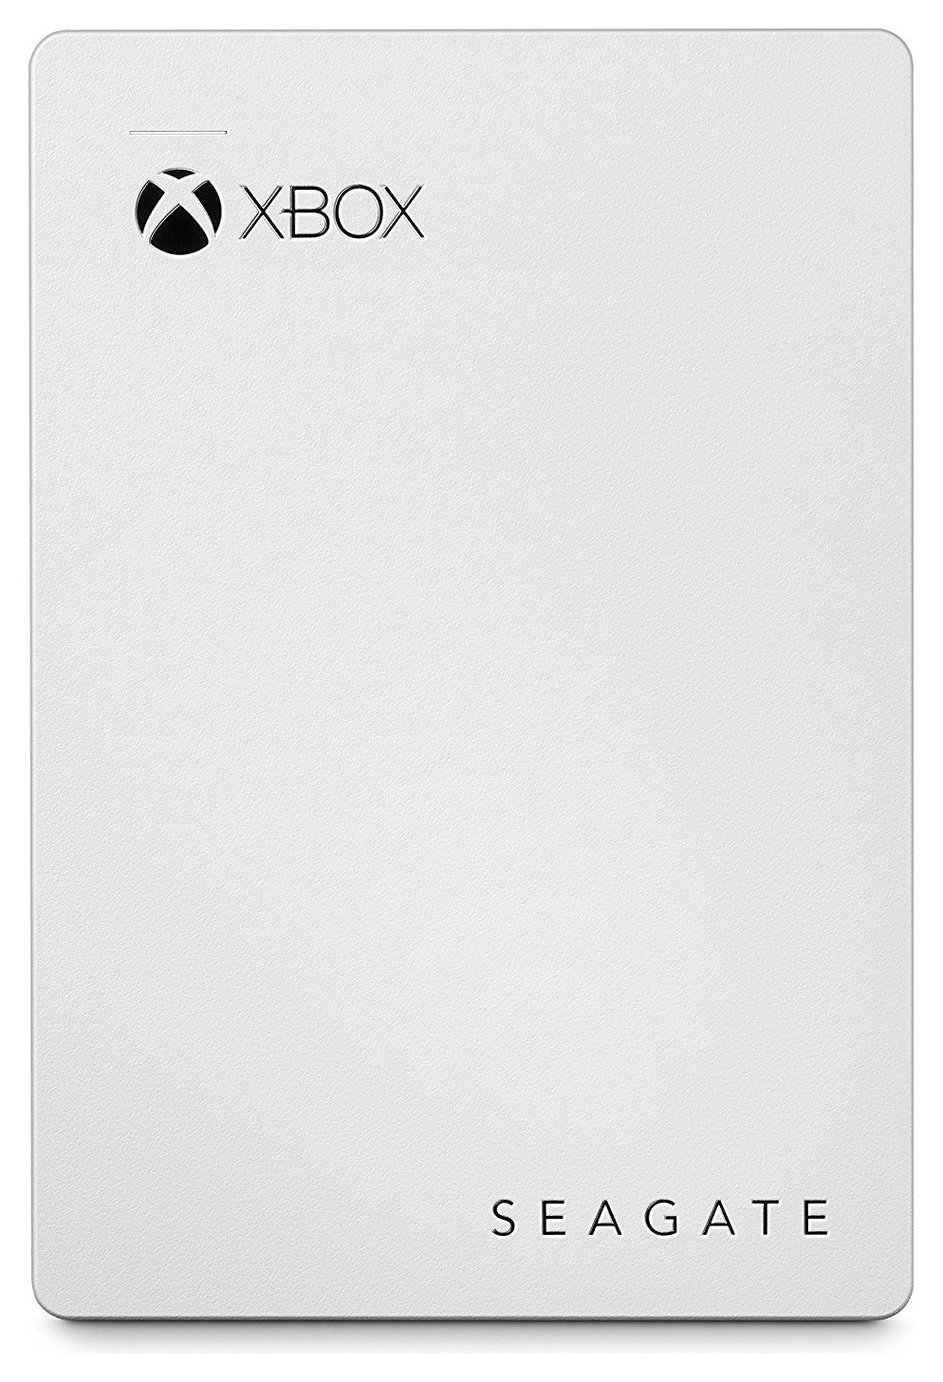 Seagate 4TB Xbox Gaming Hard Drive & GamePass